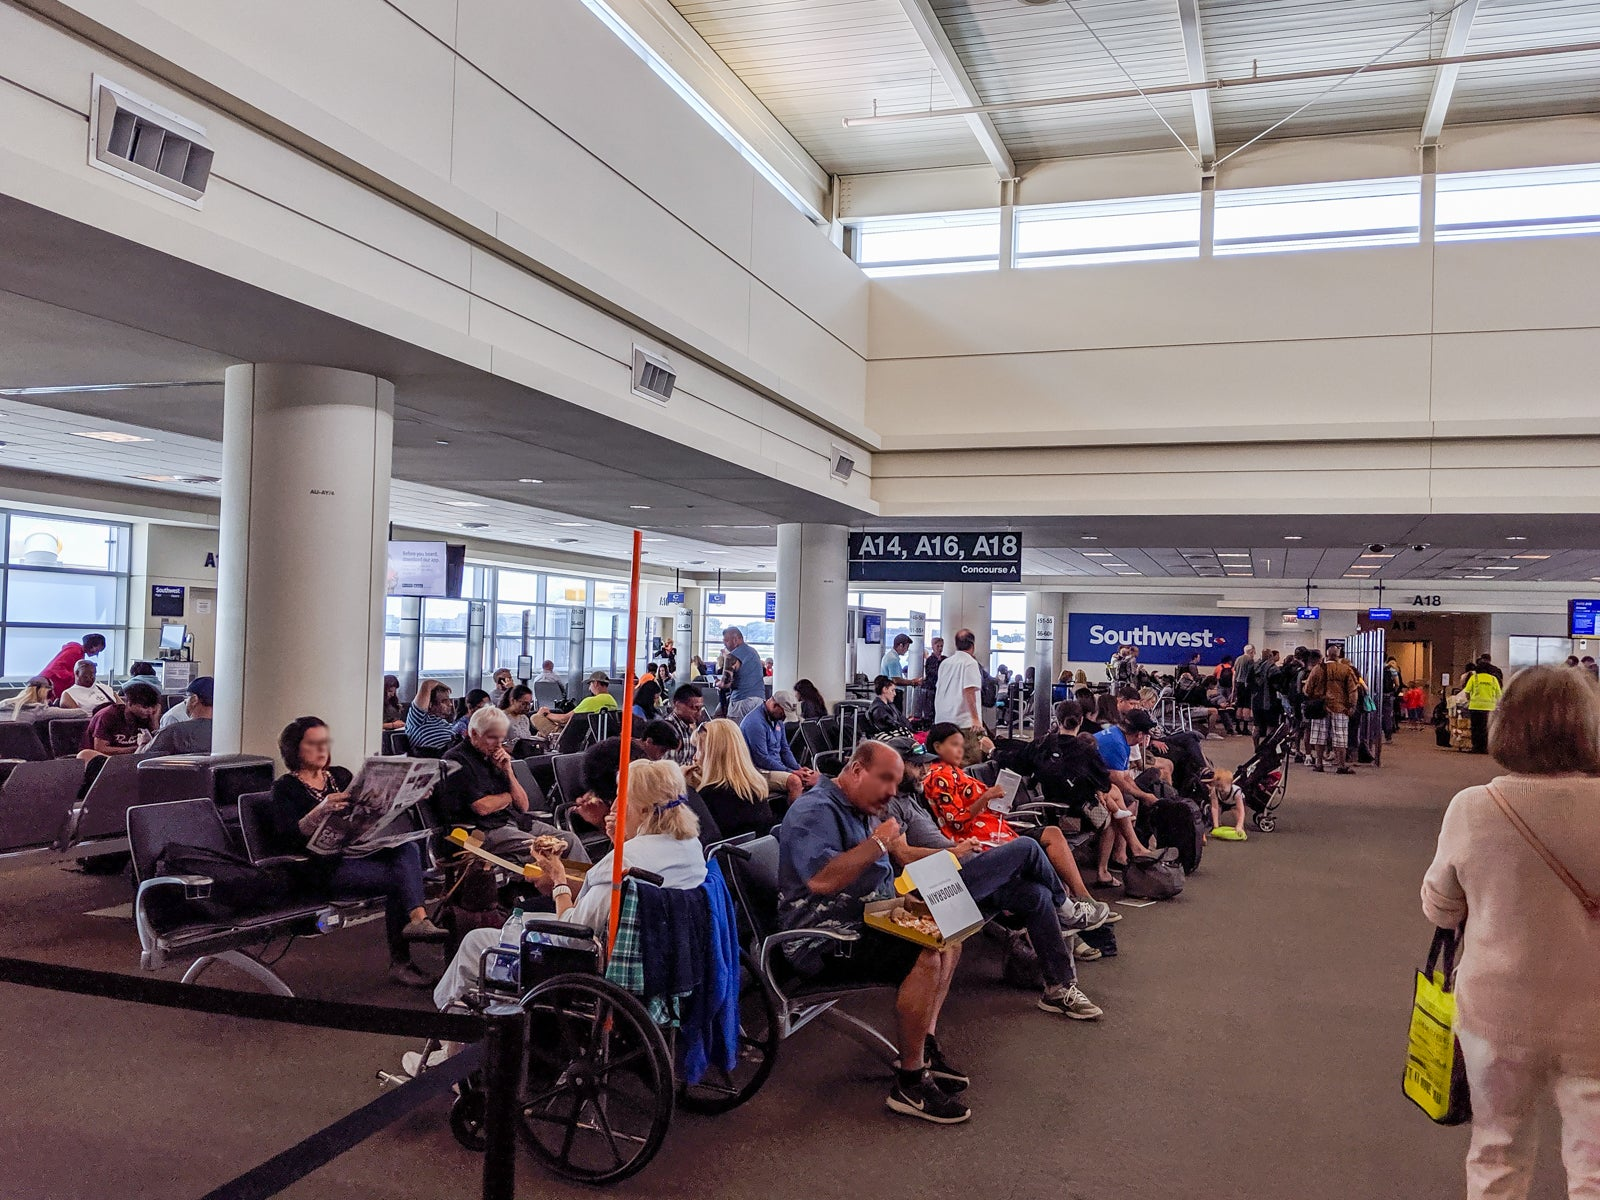 What It's Like to Visit the Worst Airport in the US